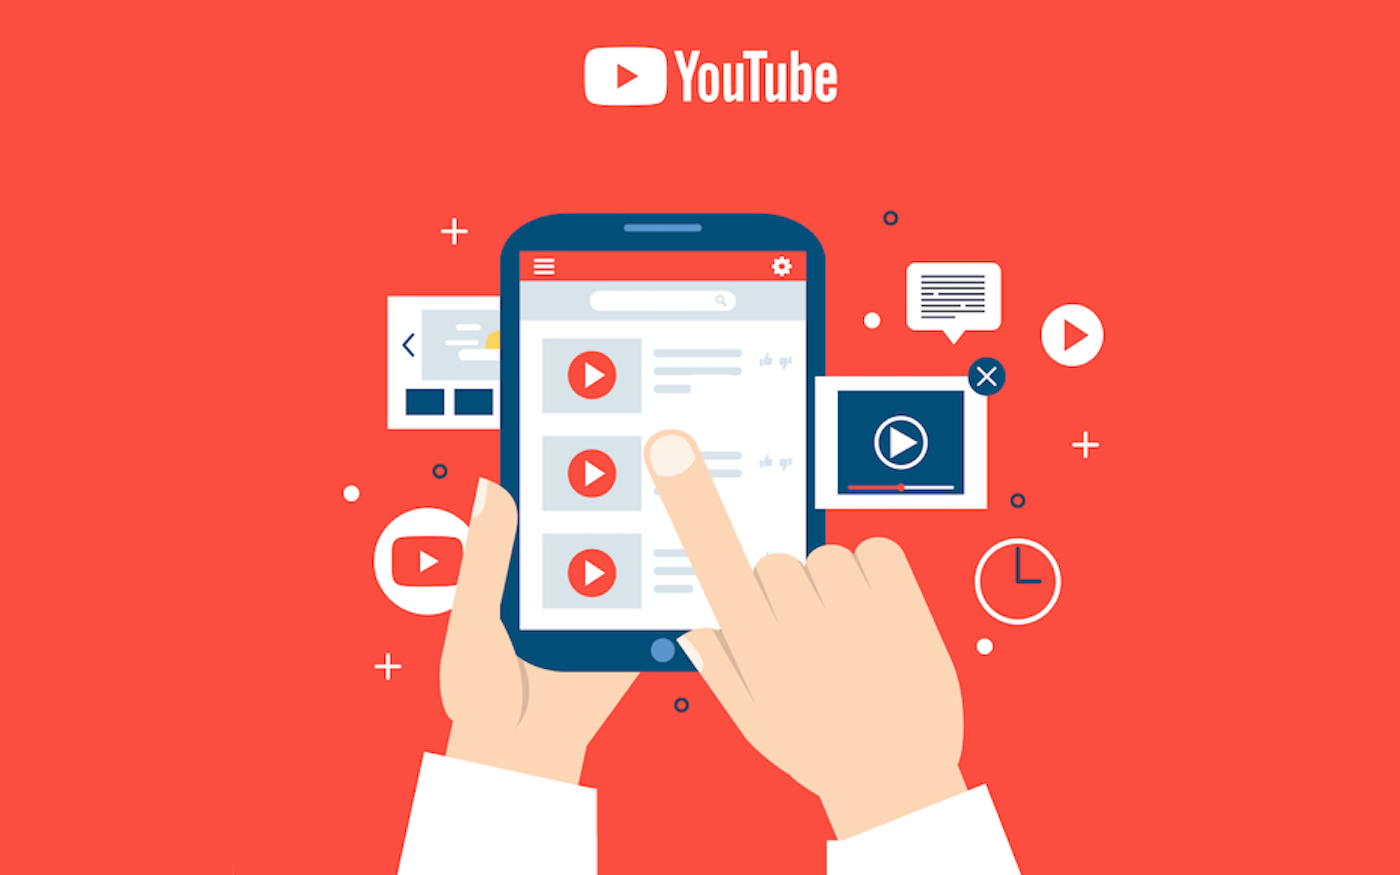 SEO para Youtube: 7 Ferramentas para Impulsionar o seu Conteúdo ➤ a Menina Digital, Marketing de Conteúdo, Redes Sociais, Video Marketing, Content Marketing, Social Media, Estratégias Online, Estratégias Digitais